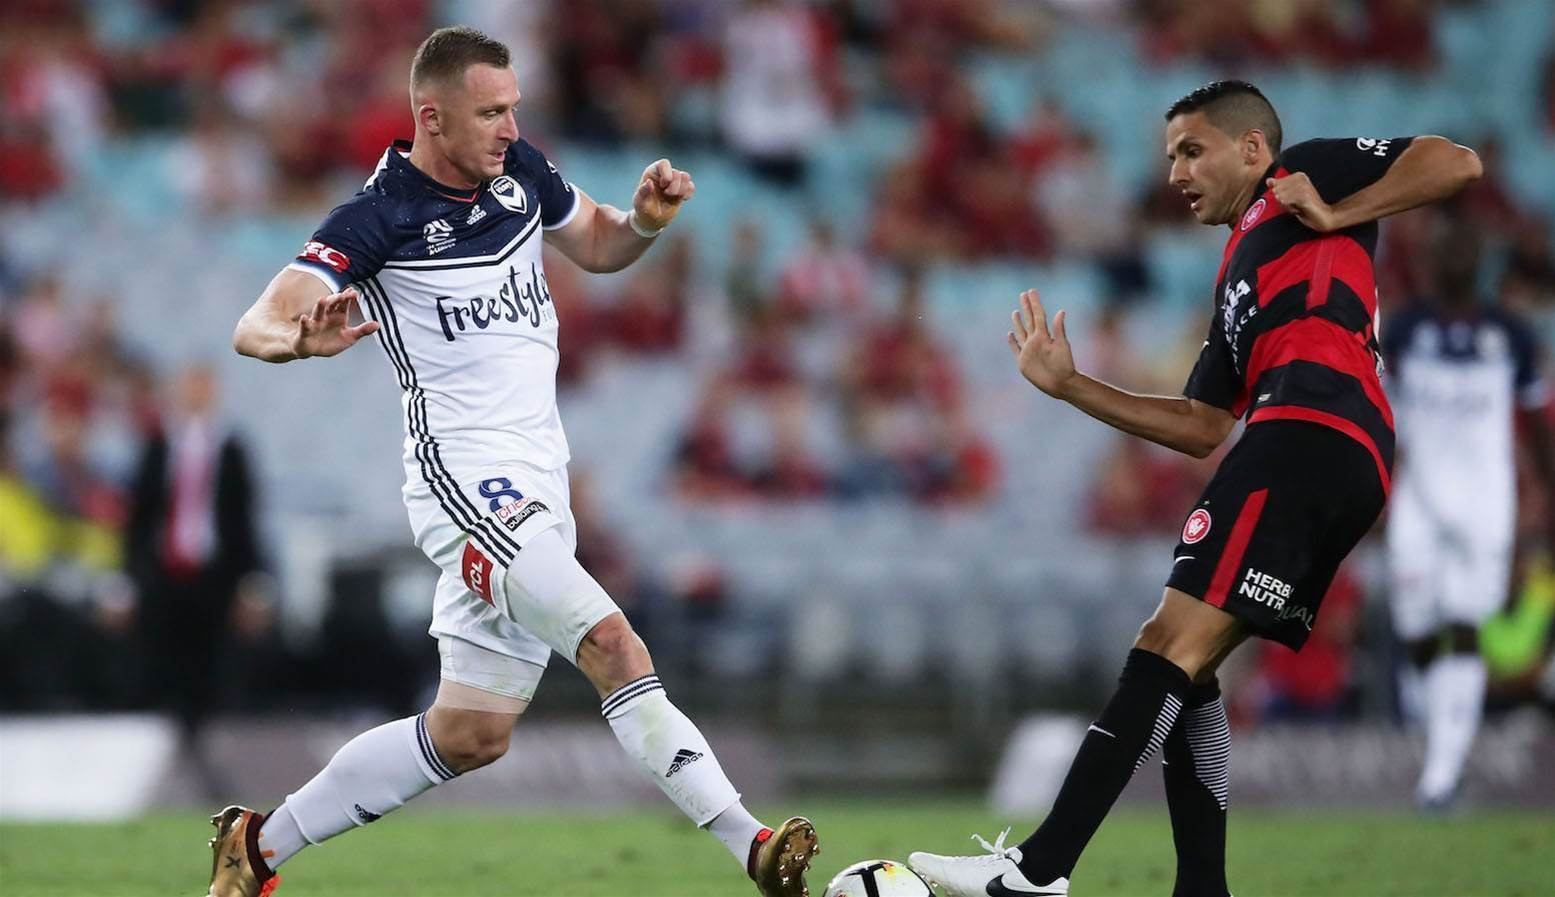 Berisha unfazed by the critics